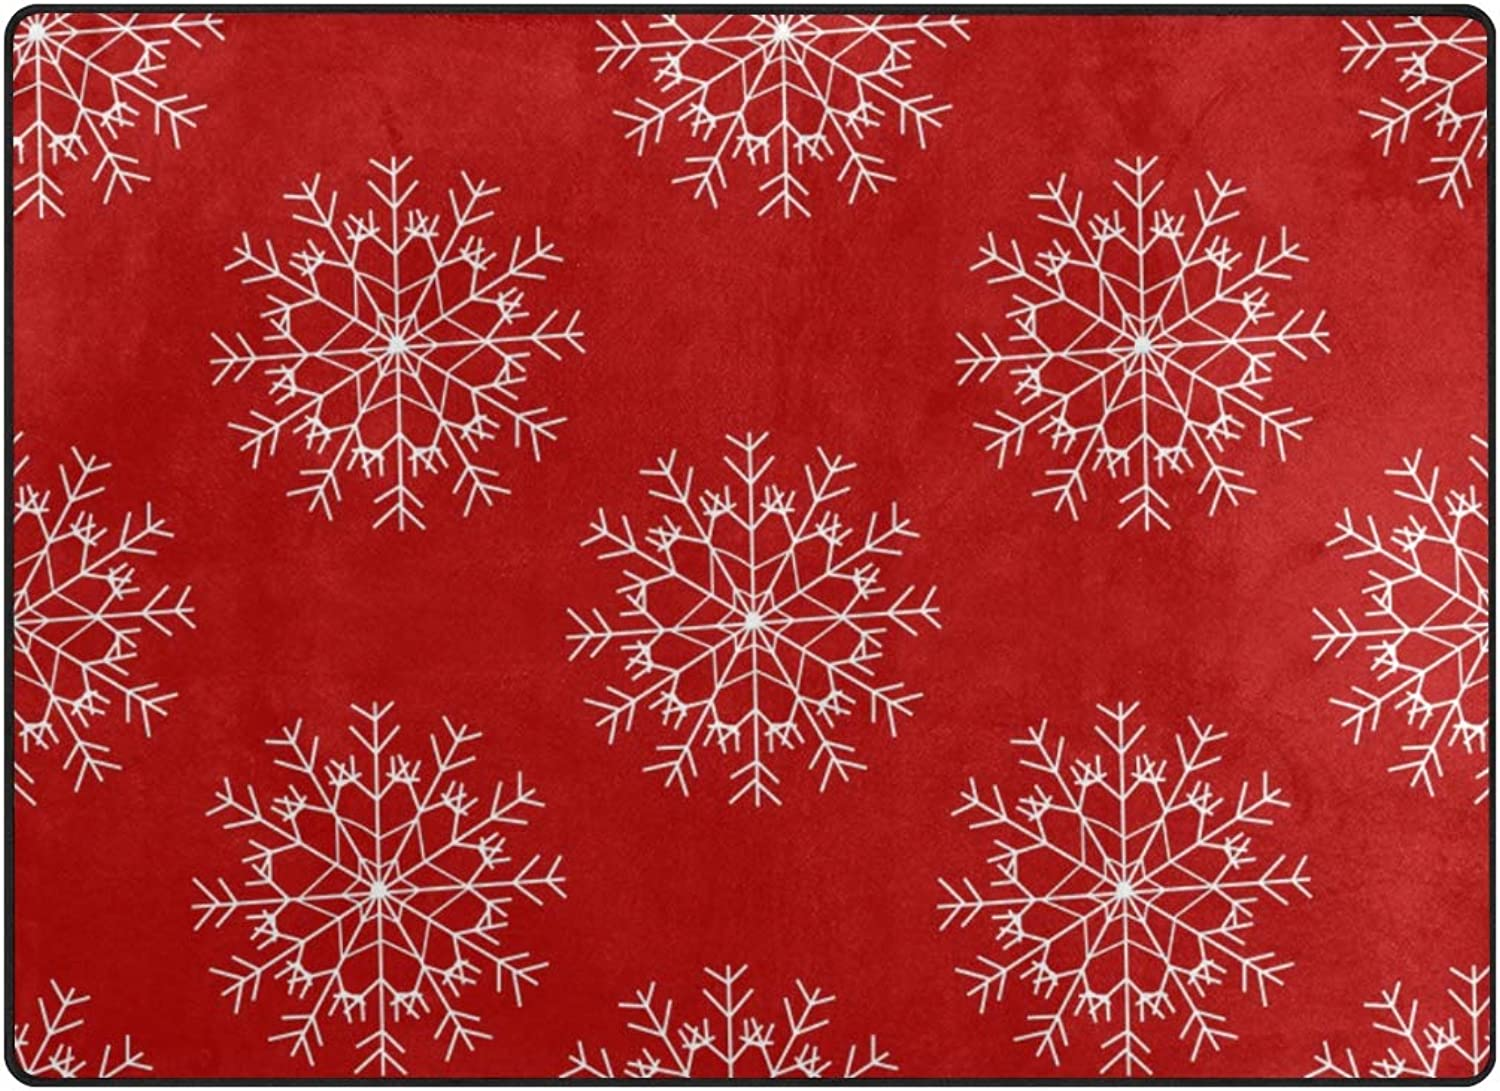 FAJRO Poinsettia New Years Snowflake Polyester Entry Way Doormat Area Rug Multipattern Door Mat Floor Mats shoes Scraper Home Dec Anti-Slip Indoor Outdoor